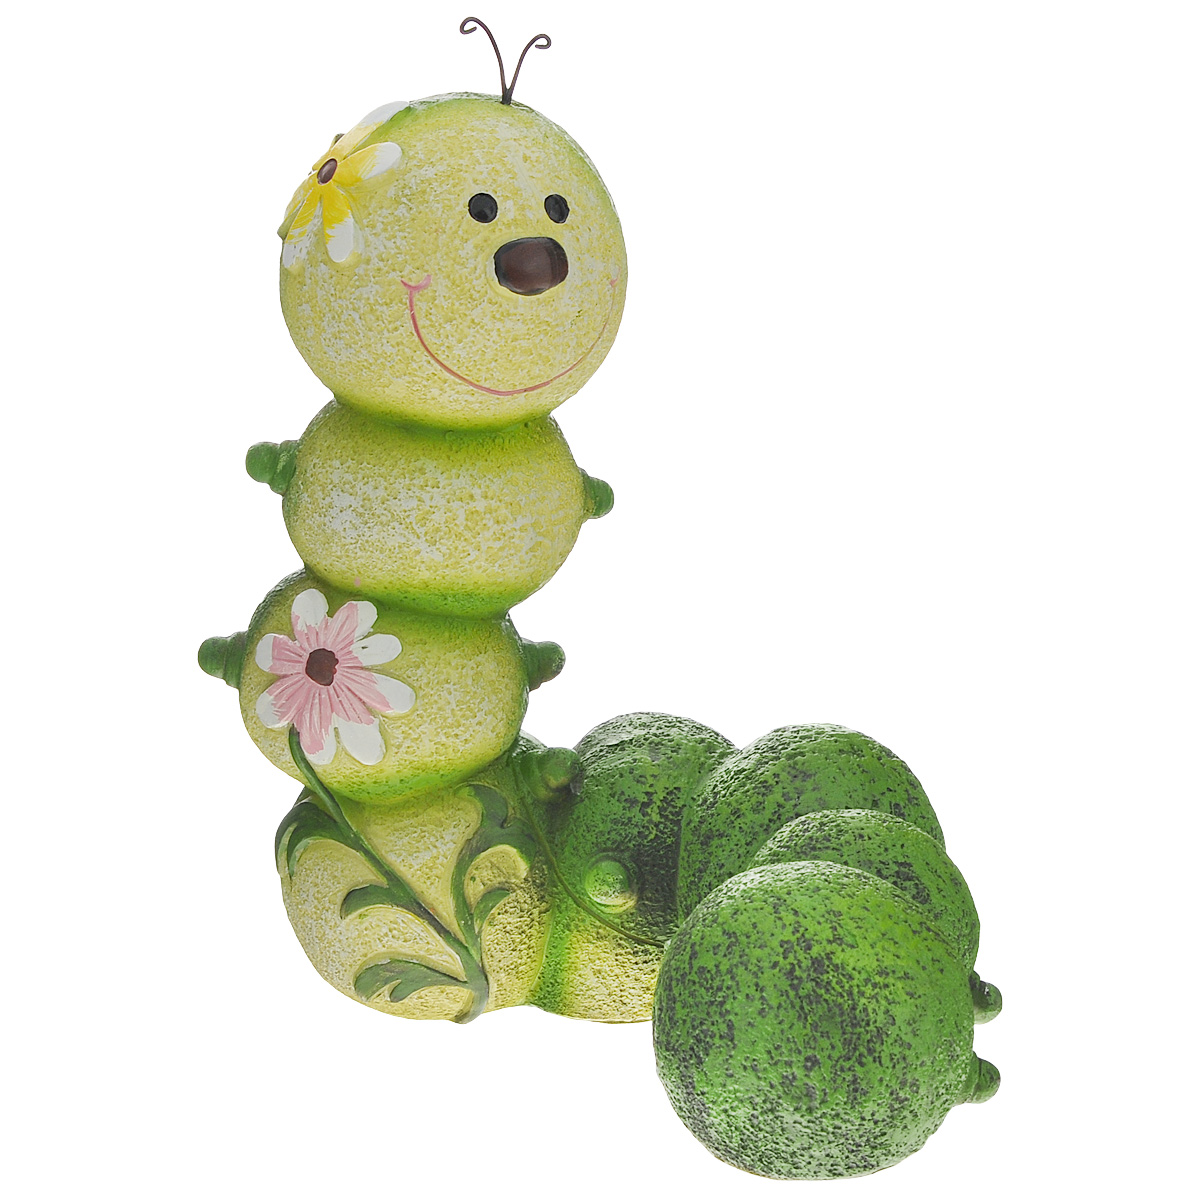 Фигурка садовая Green Apple Гусеница, 18,5 х 12,5 23 см